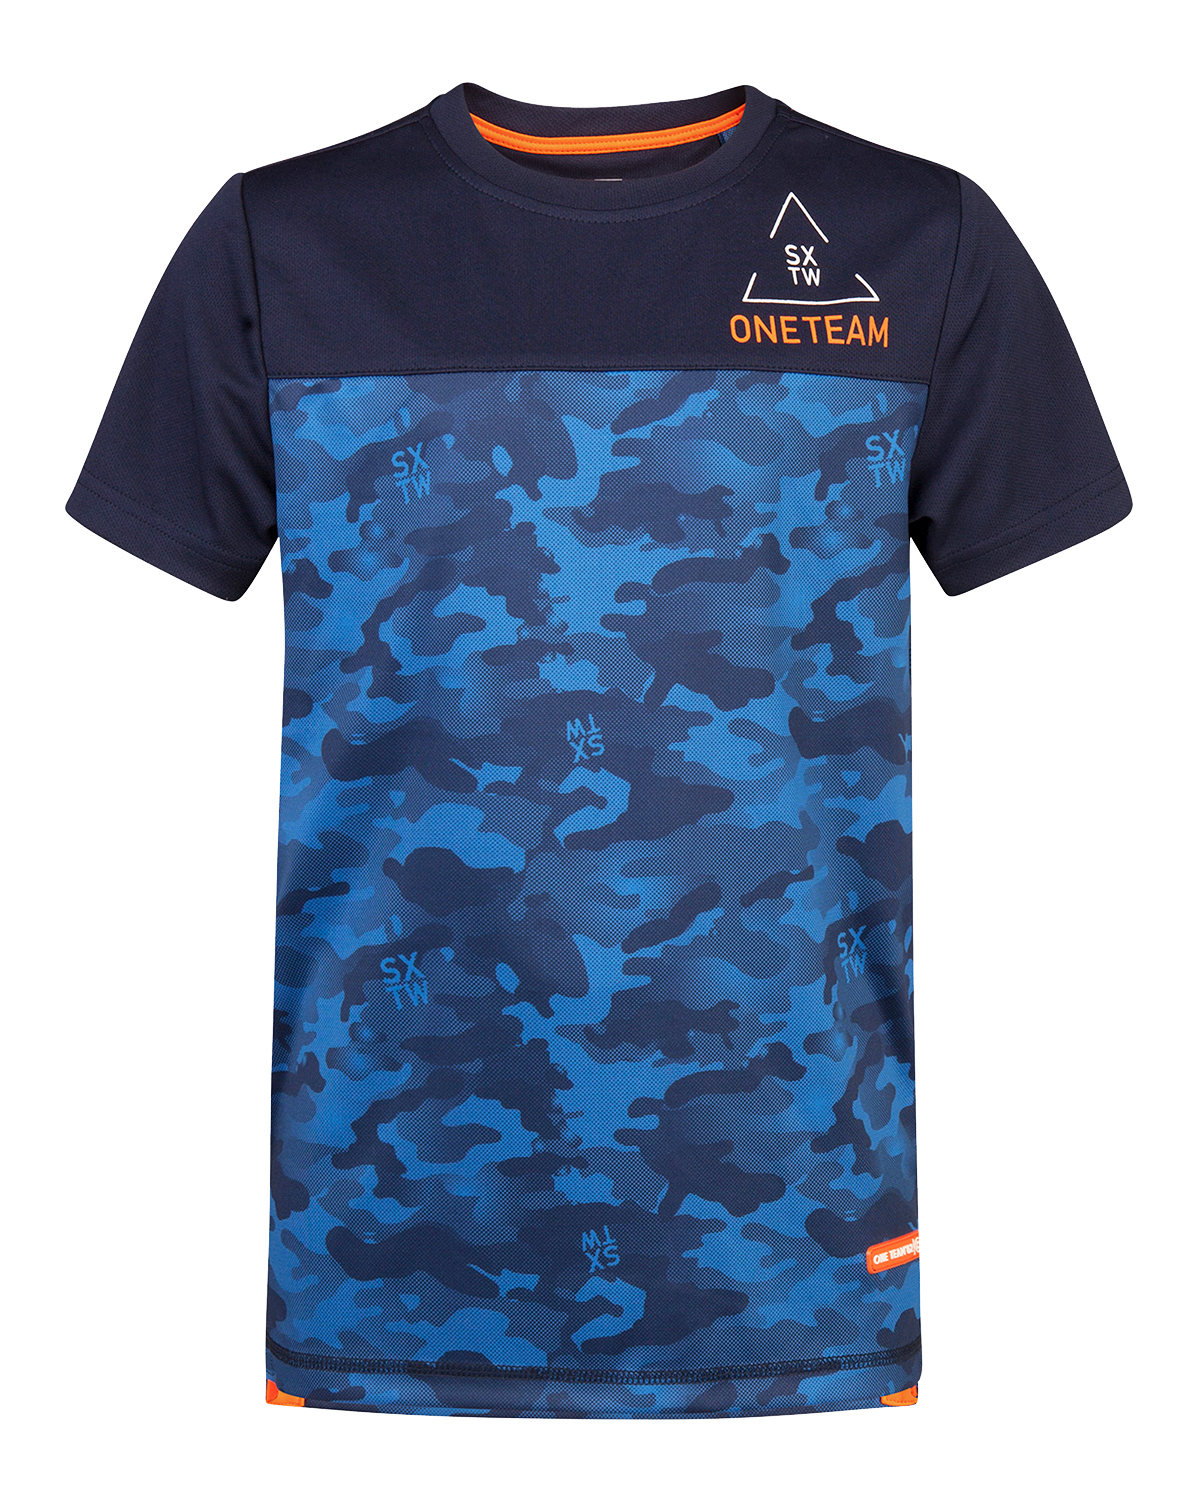 Jungen t shirt mit camouflage print 79976381 we fashion for T shirt printing delaware